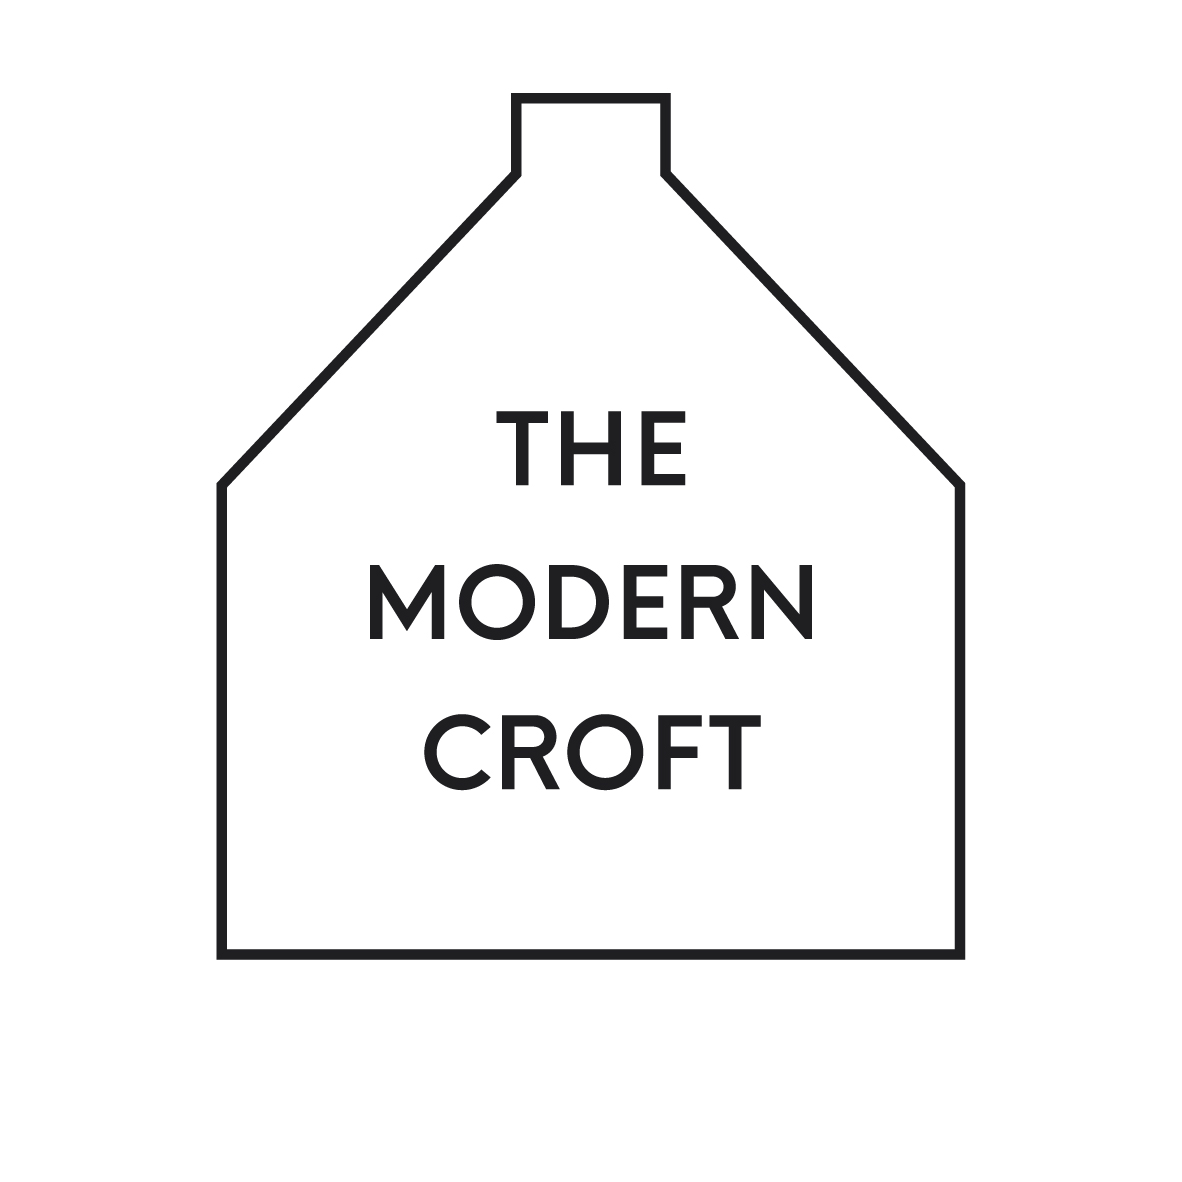 The Modern Croft